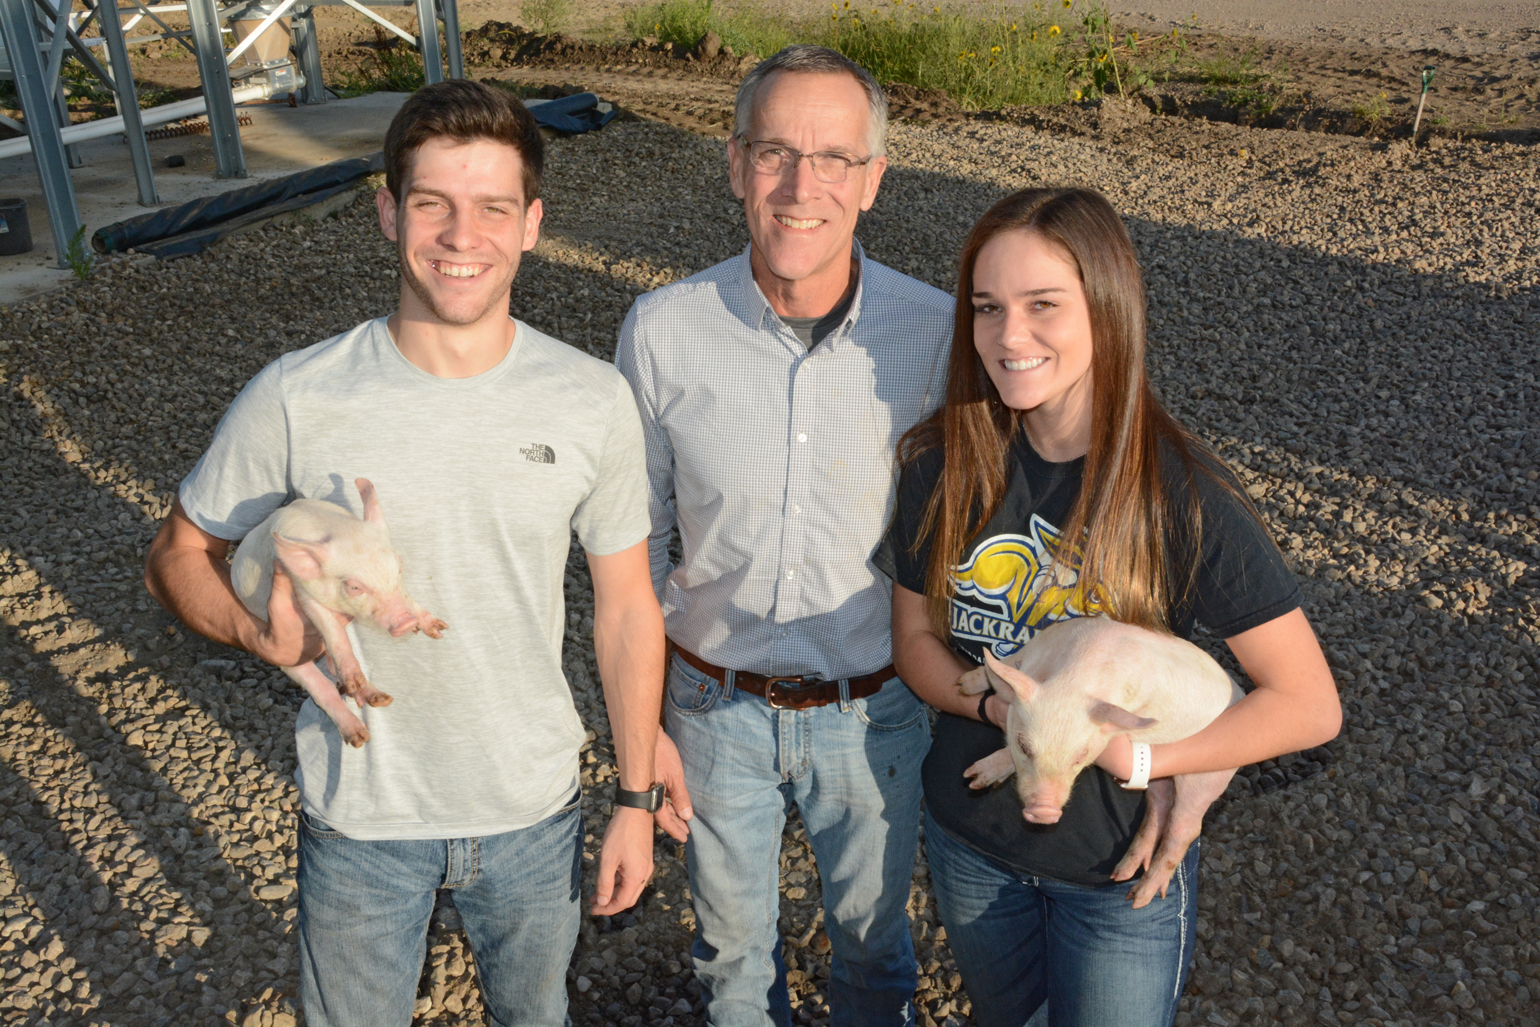 Karl Schenk and his children, Karl II and Kyra, holding piglets